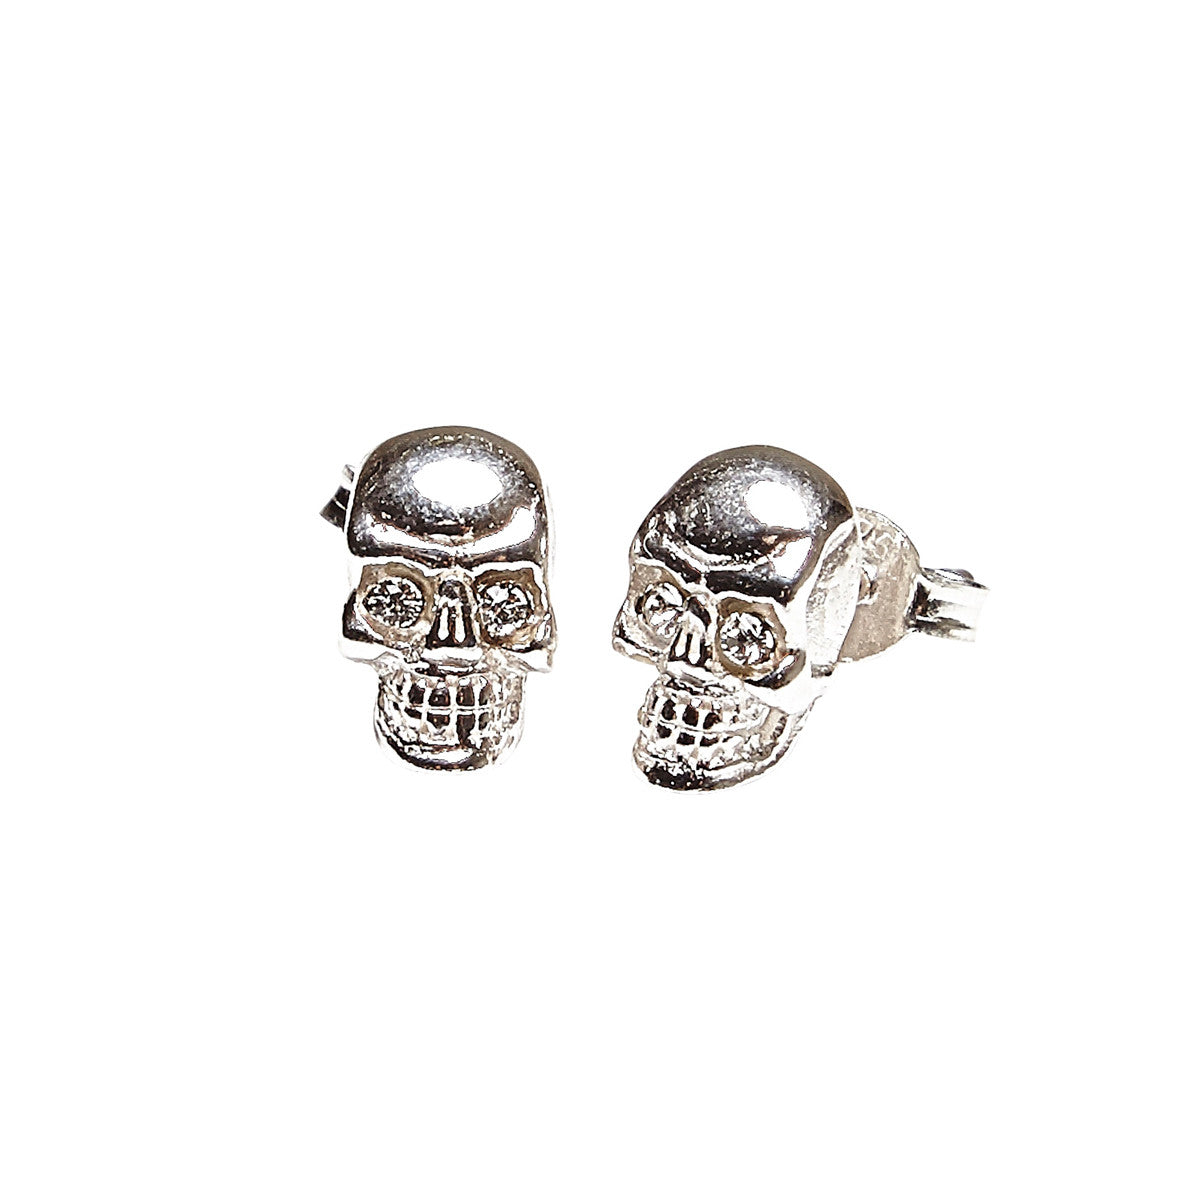 Silk & Steel Skullduggery Sterling Silver Stud Earrings